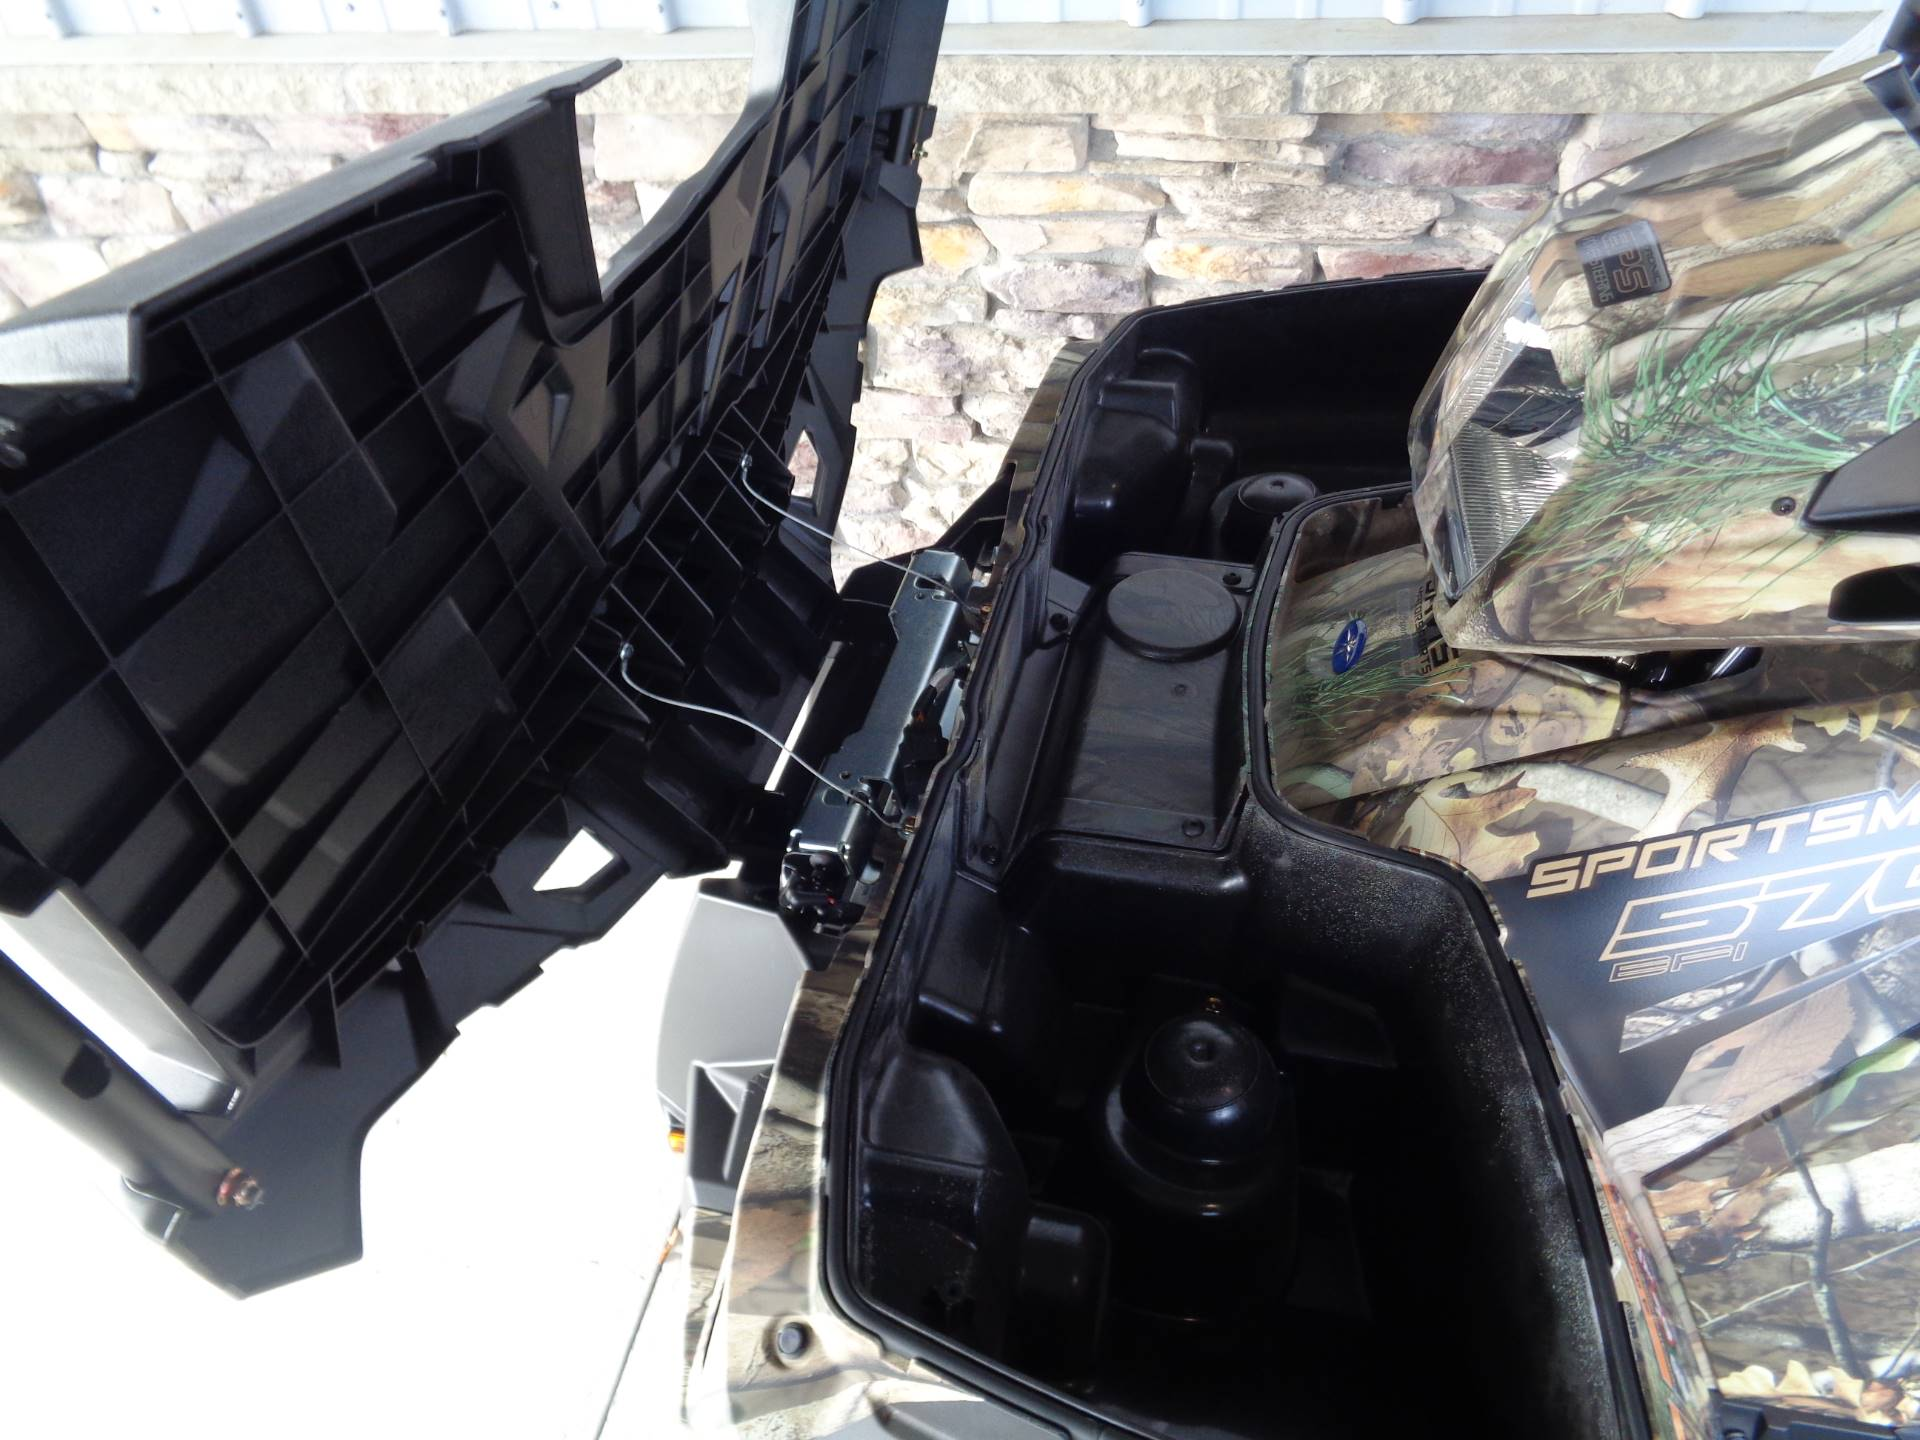 2019 Polaris Sportsman 570 Camo in Delano, Minnesota - Photo 8